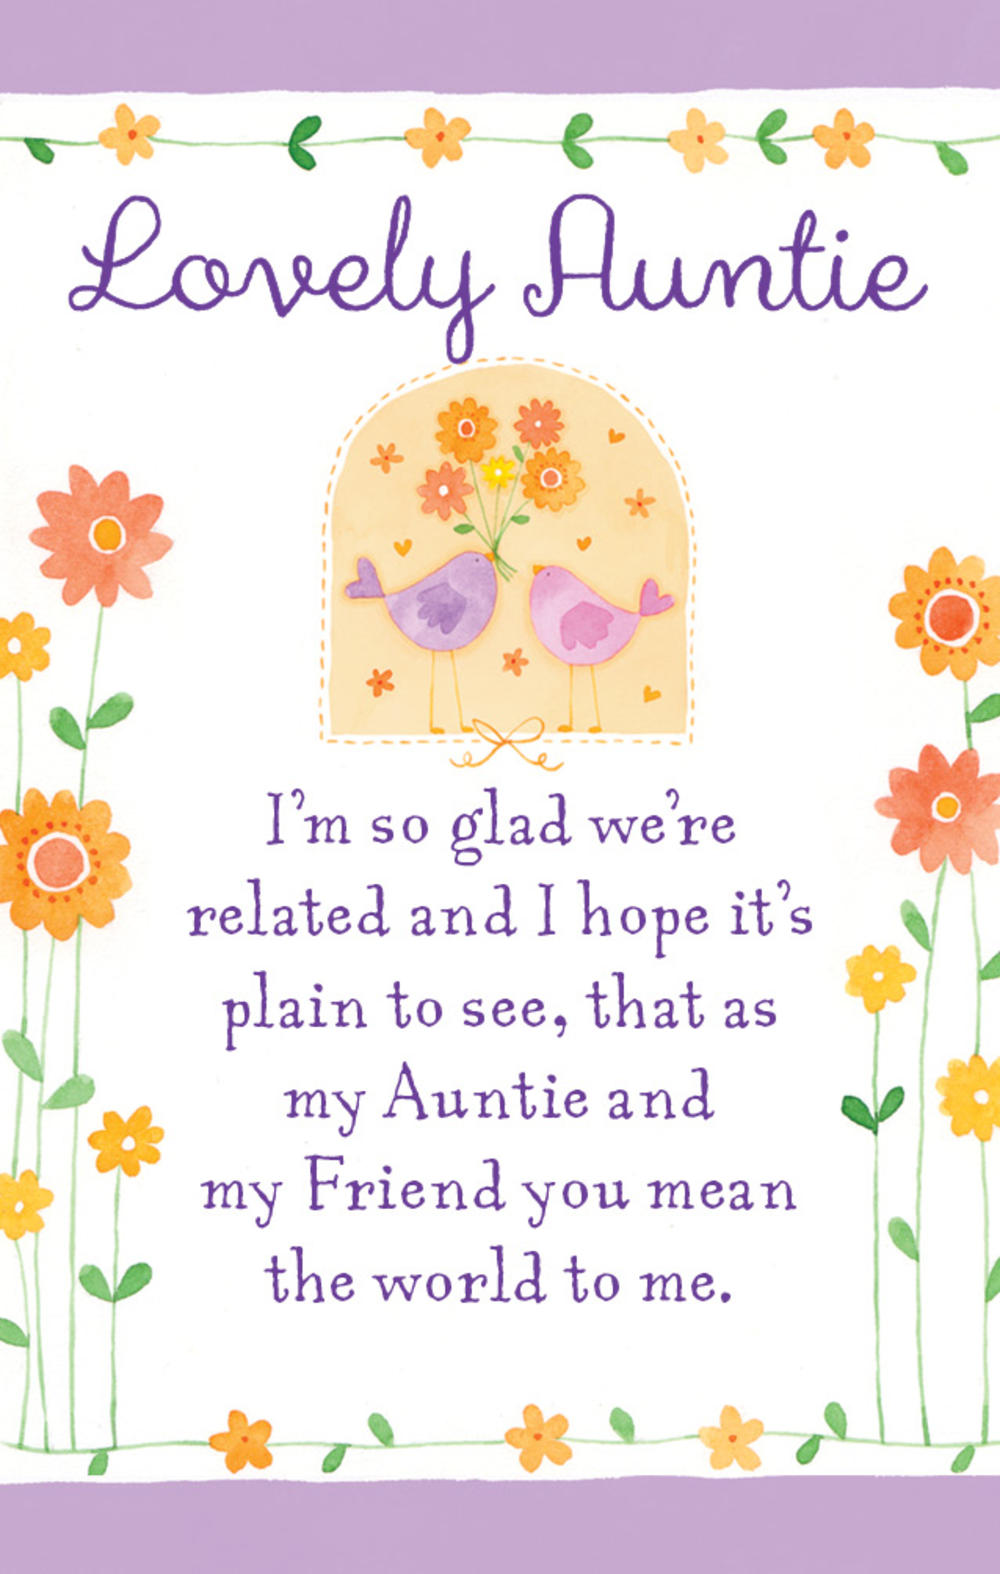 Lovely Auntie Heartwarmers Keepsake Credit Card & Envelope